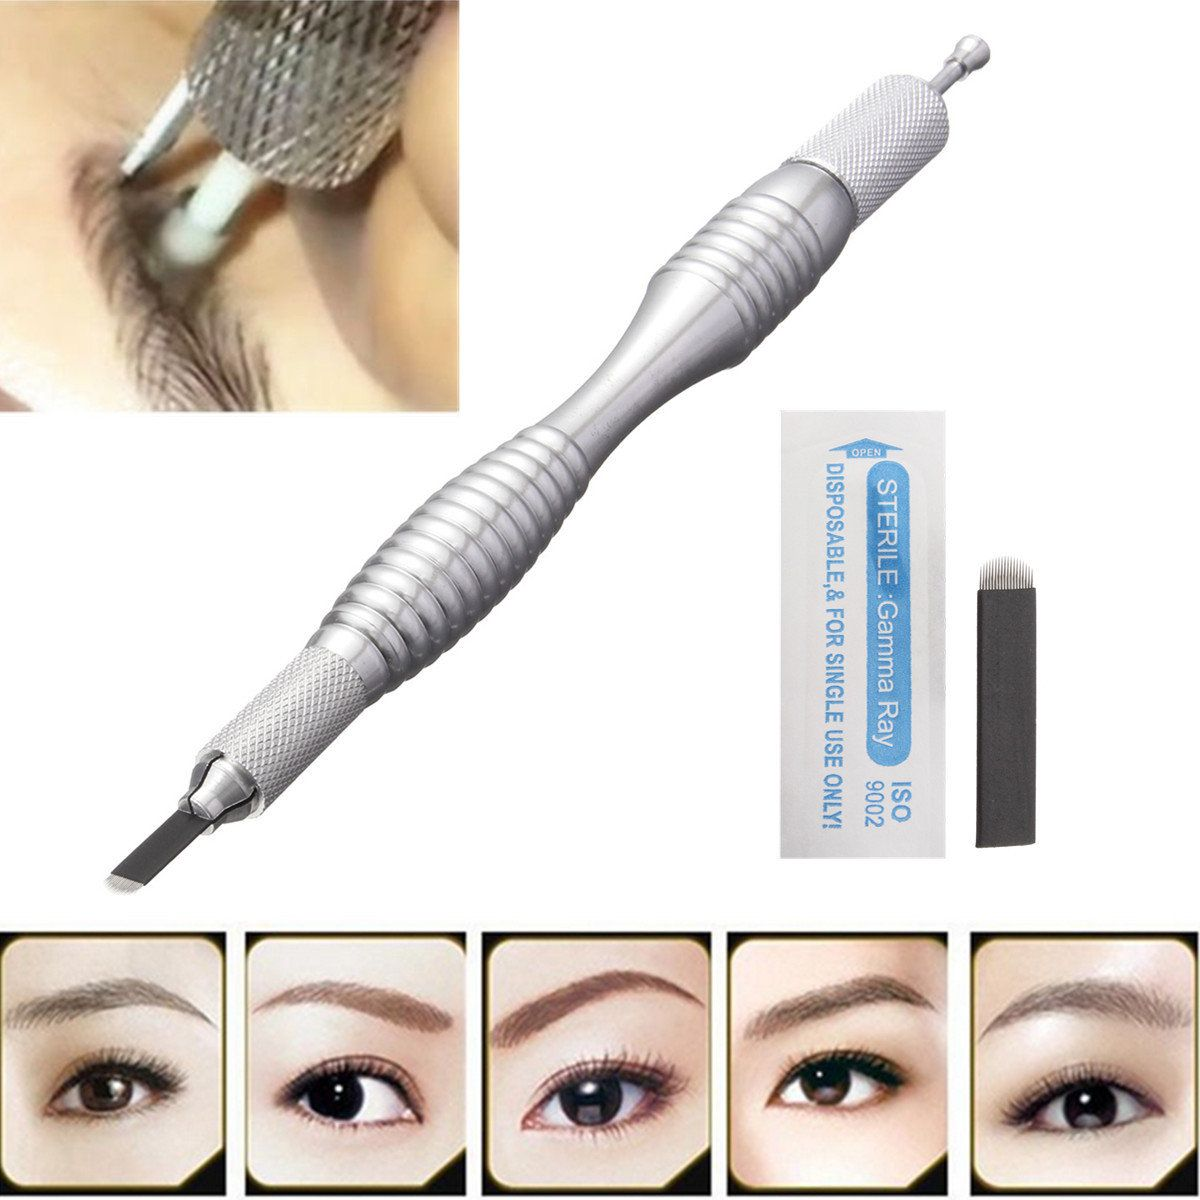 Semi Permanent Makeup Eyebrow Line Tattoo Pen Microblading